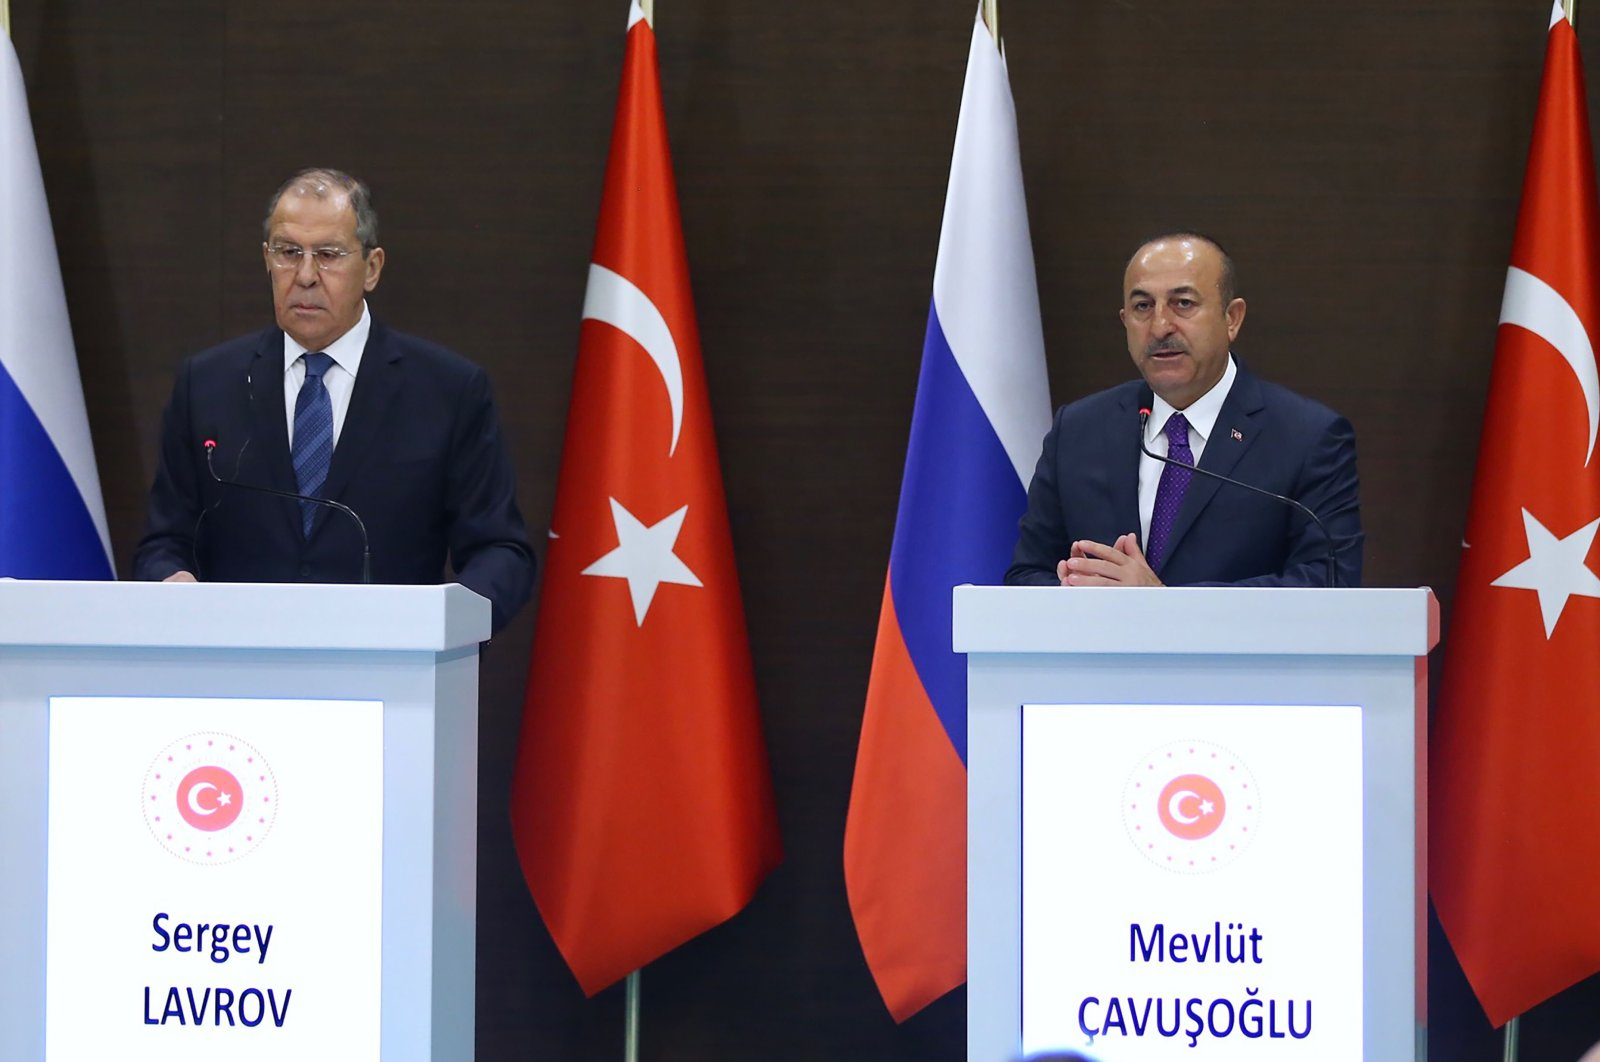 This handout picture taken and released by the Turkish Foreign Ministry in Antalya shows Turkish Foreign Minister Mevlüt Çavuşoğlu (R) and his Russian counterpart Sergei Lavrov (L), March 29, 2019.  (Turkish Foreign Ministry Press Office Photo via AFP)